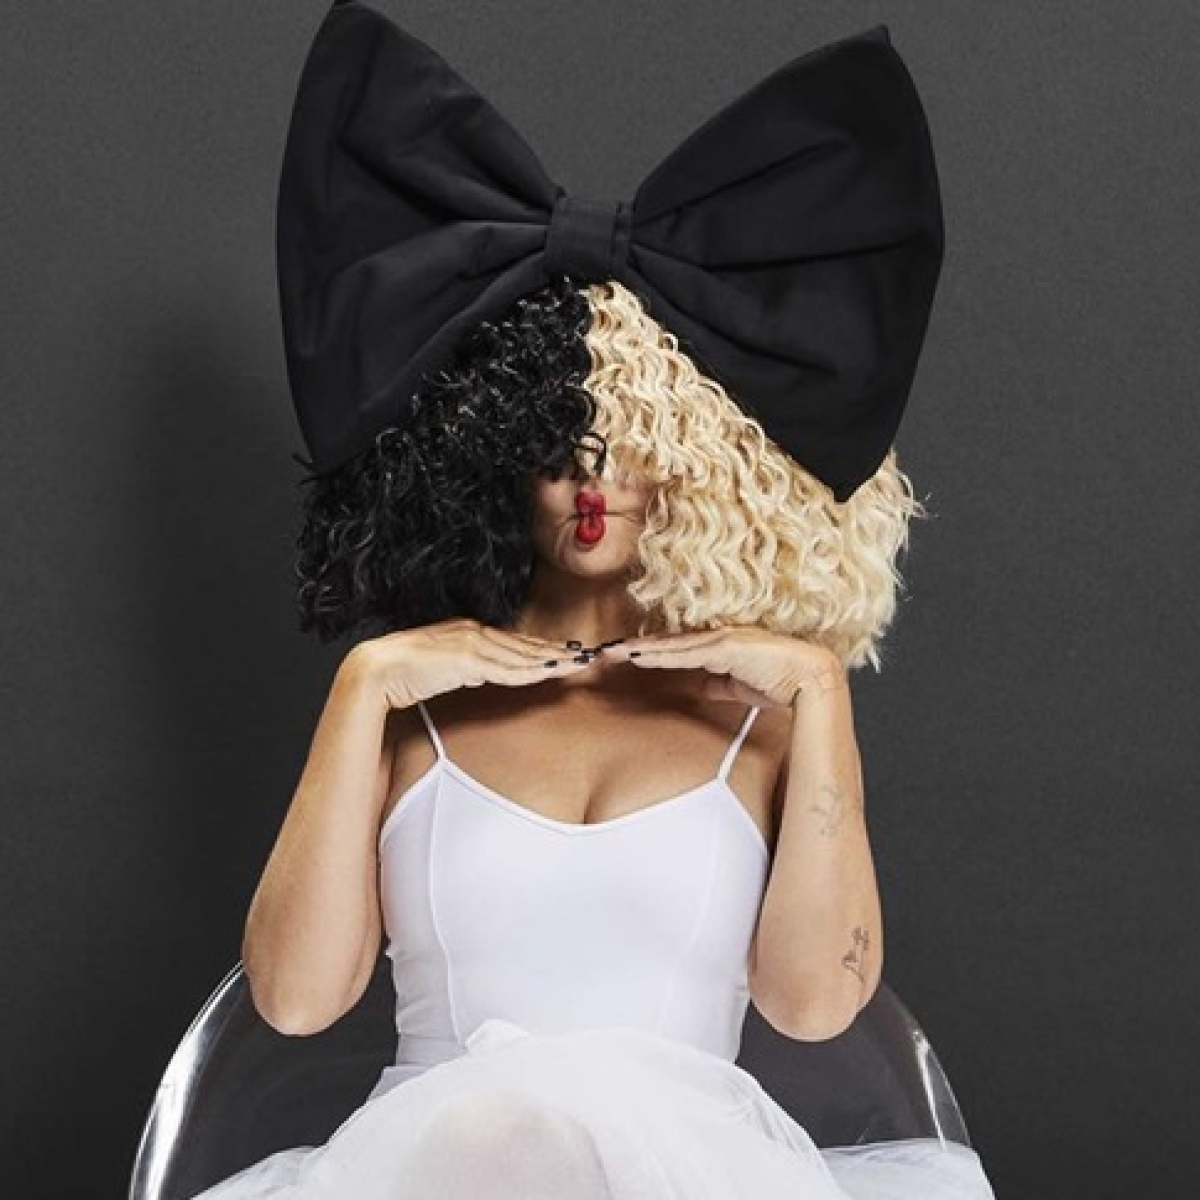 Sia faces backlash on confusing Nicki Minaj for Cardi B, offers apology